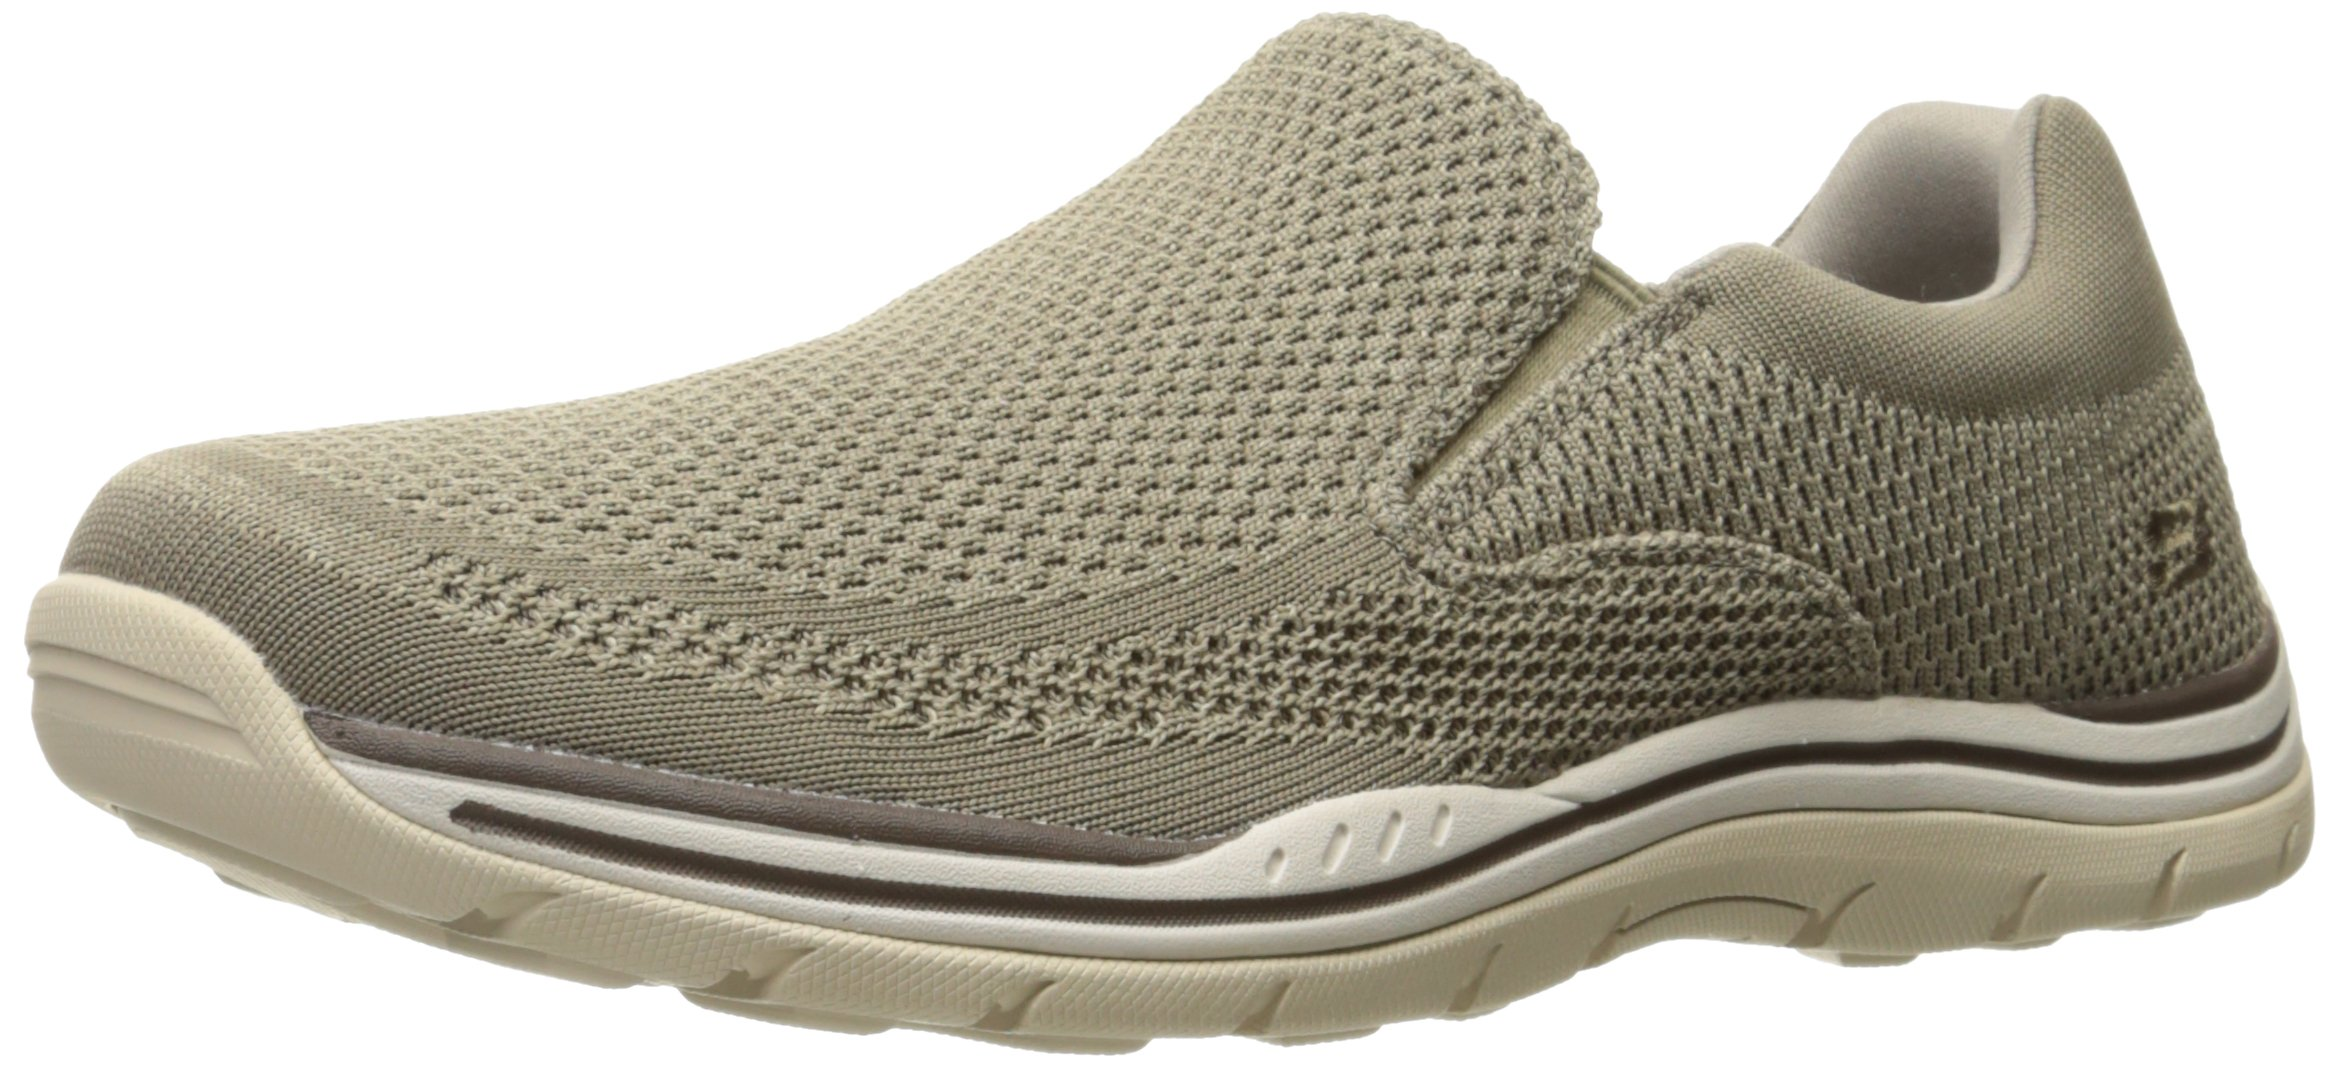 Skechers USA Men's Expected Gomel Slip-on Loafer, Taupe, 10.5 2W US